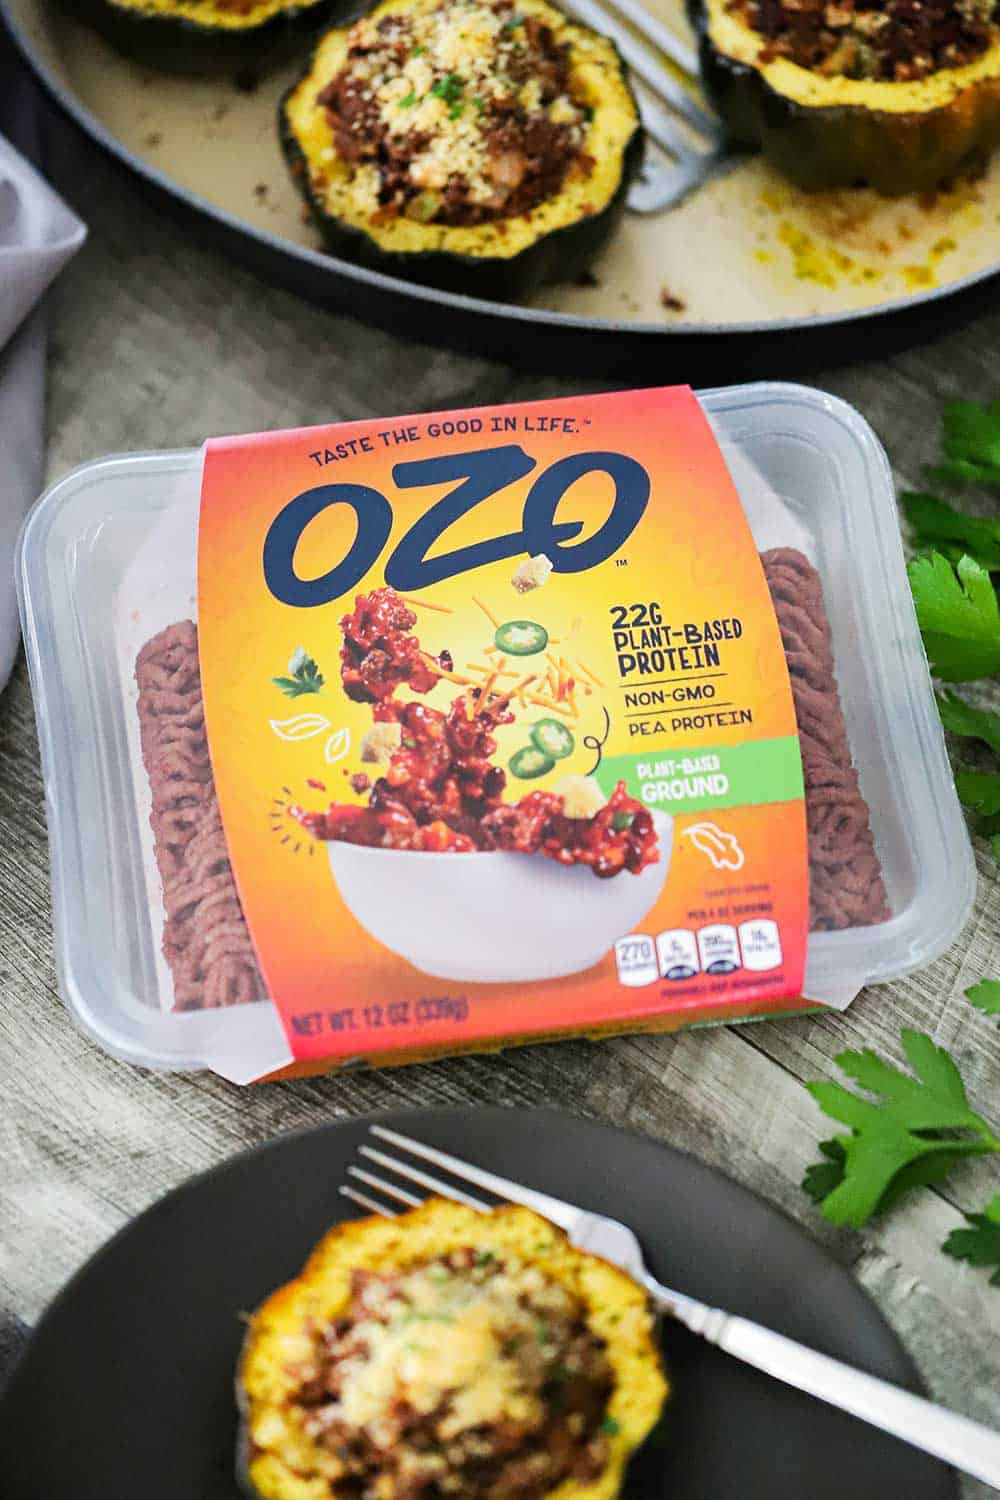 A package of OZO Protein-Based Ground in between a plate and baking dish filled with stuffed acorn squash.